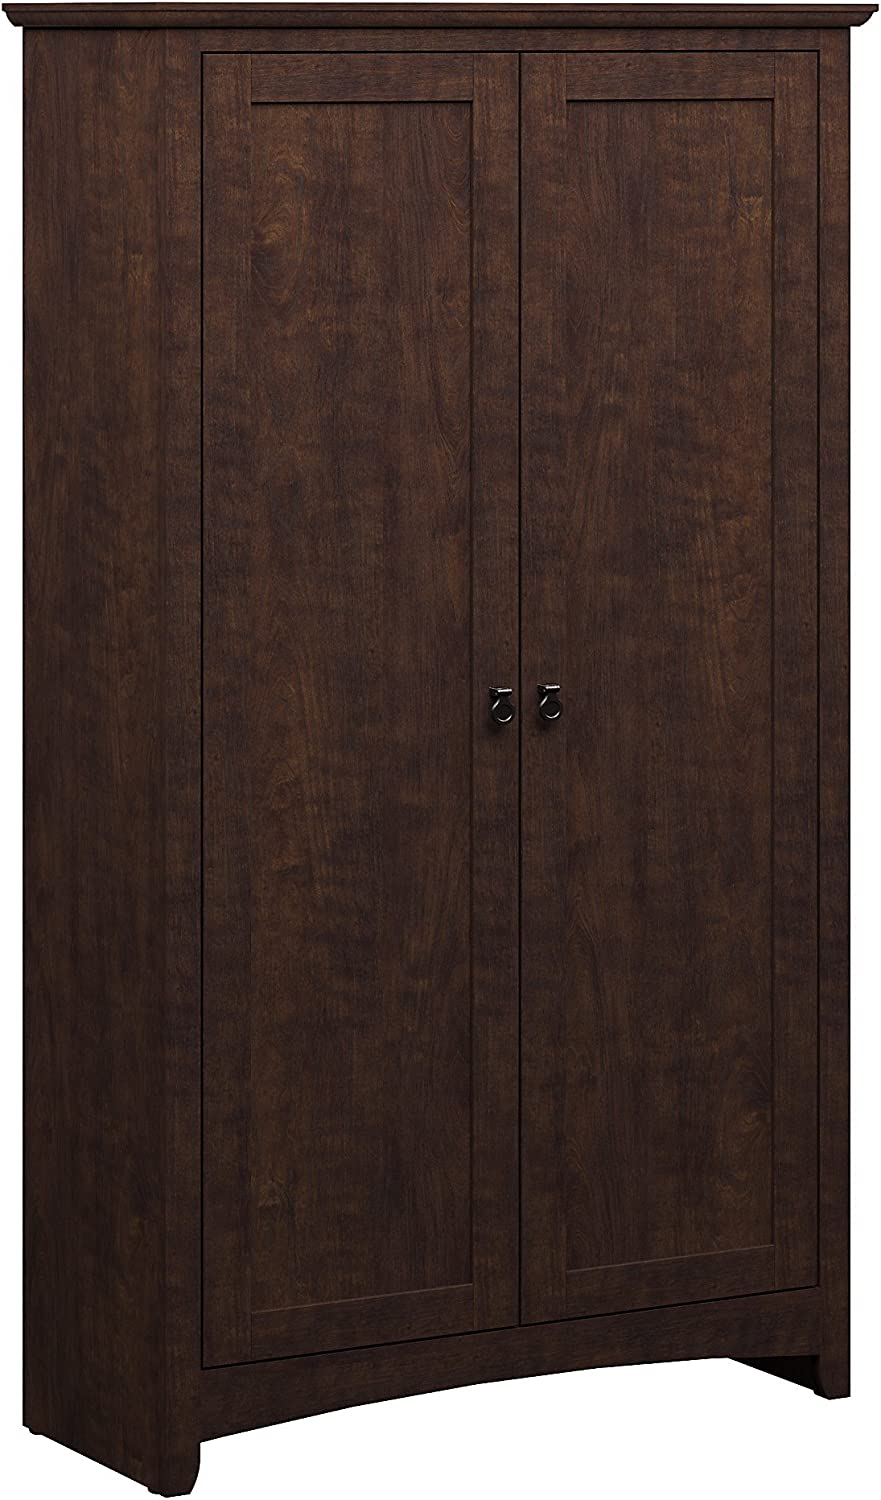 Bush Furniture Buena Vista Tall Storage Cabinet with Doors in Madison Cherry